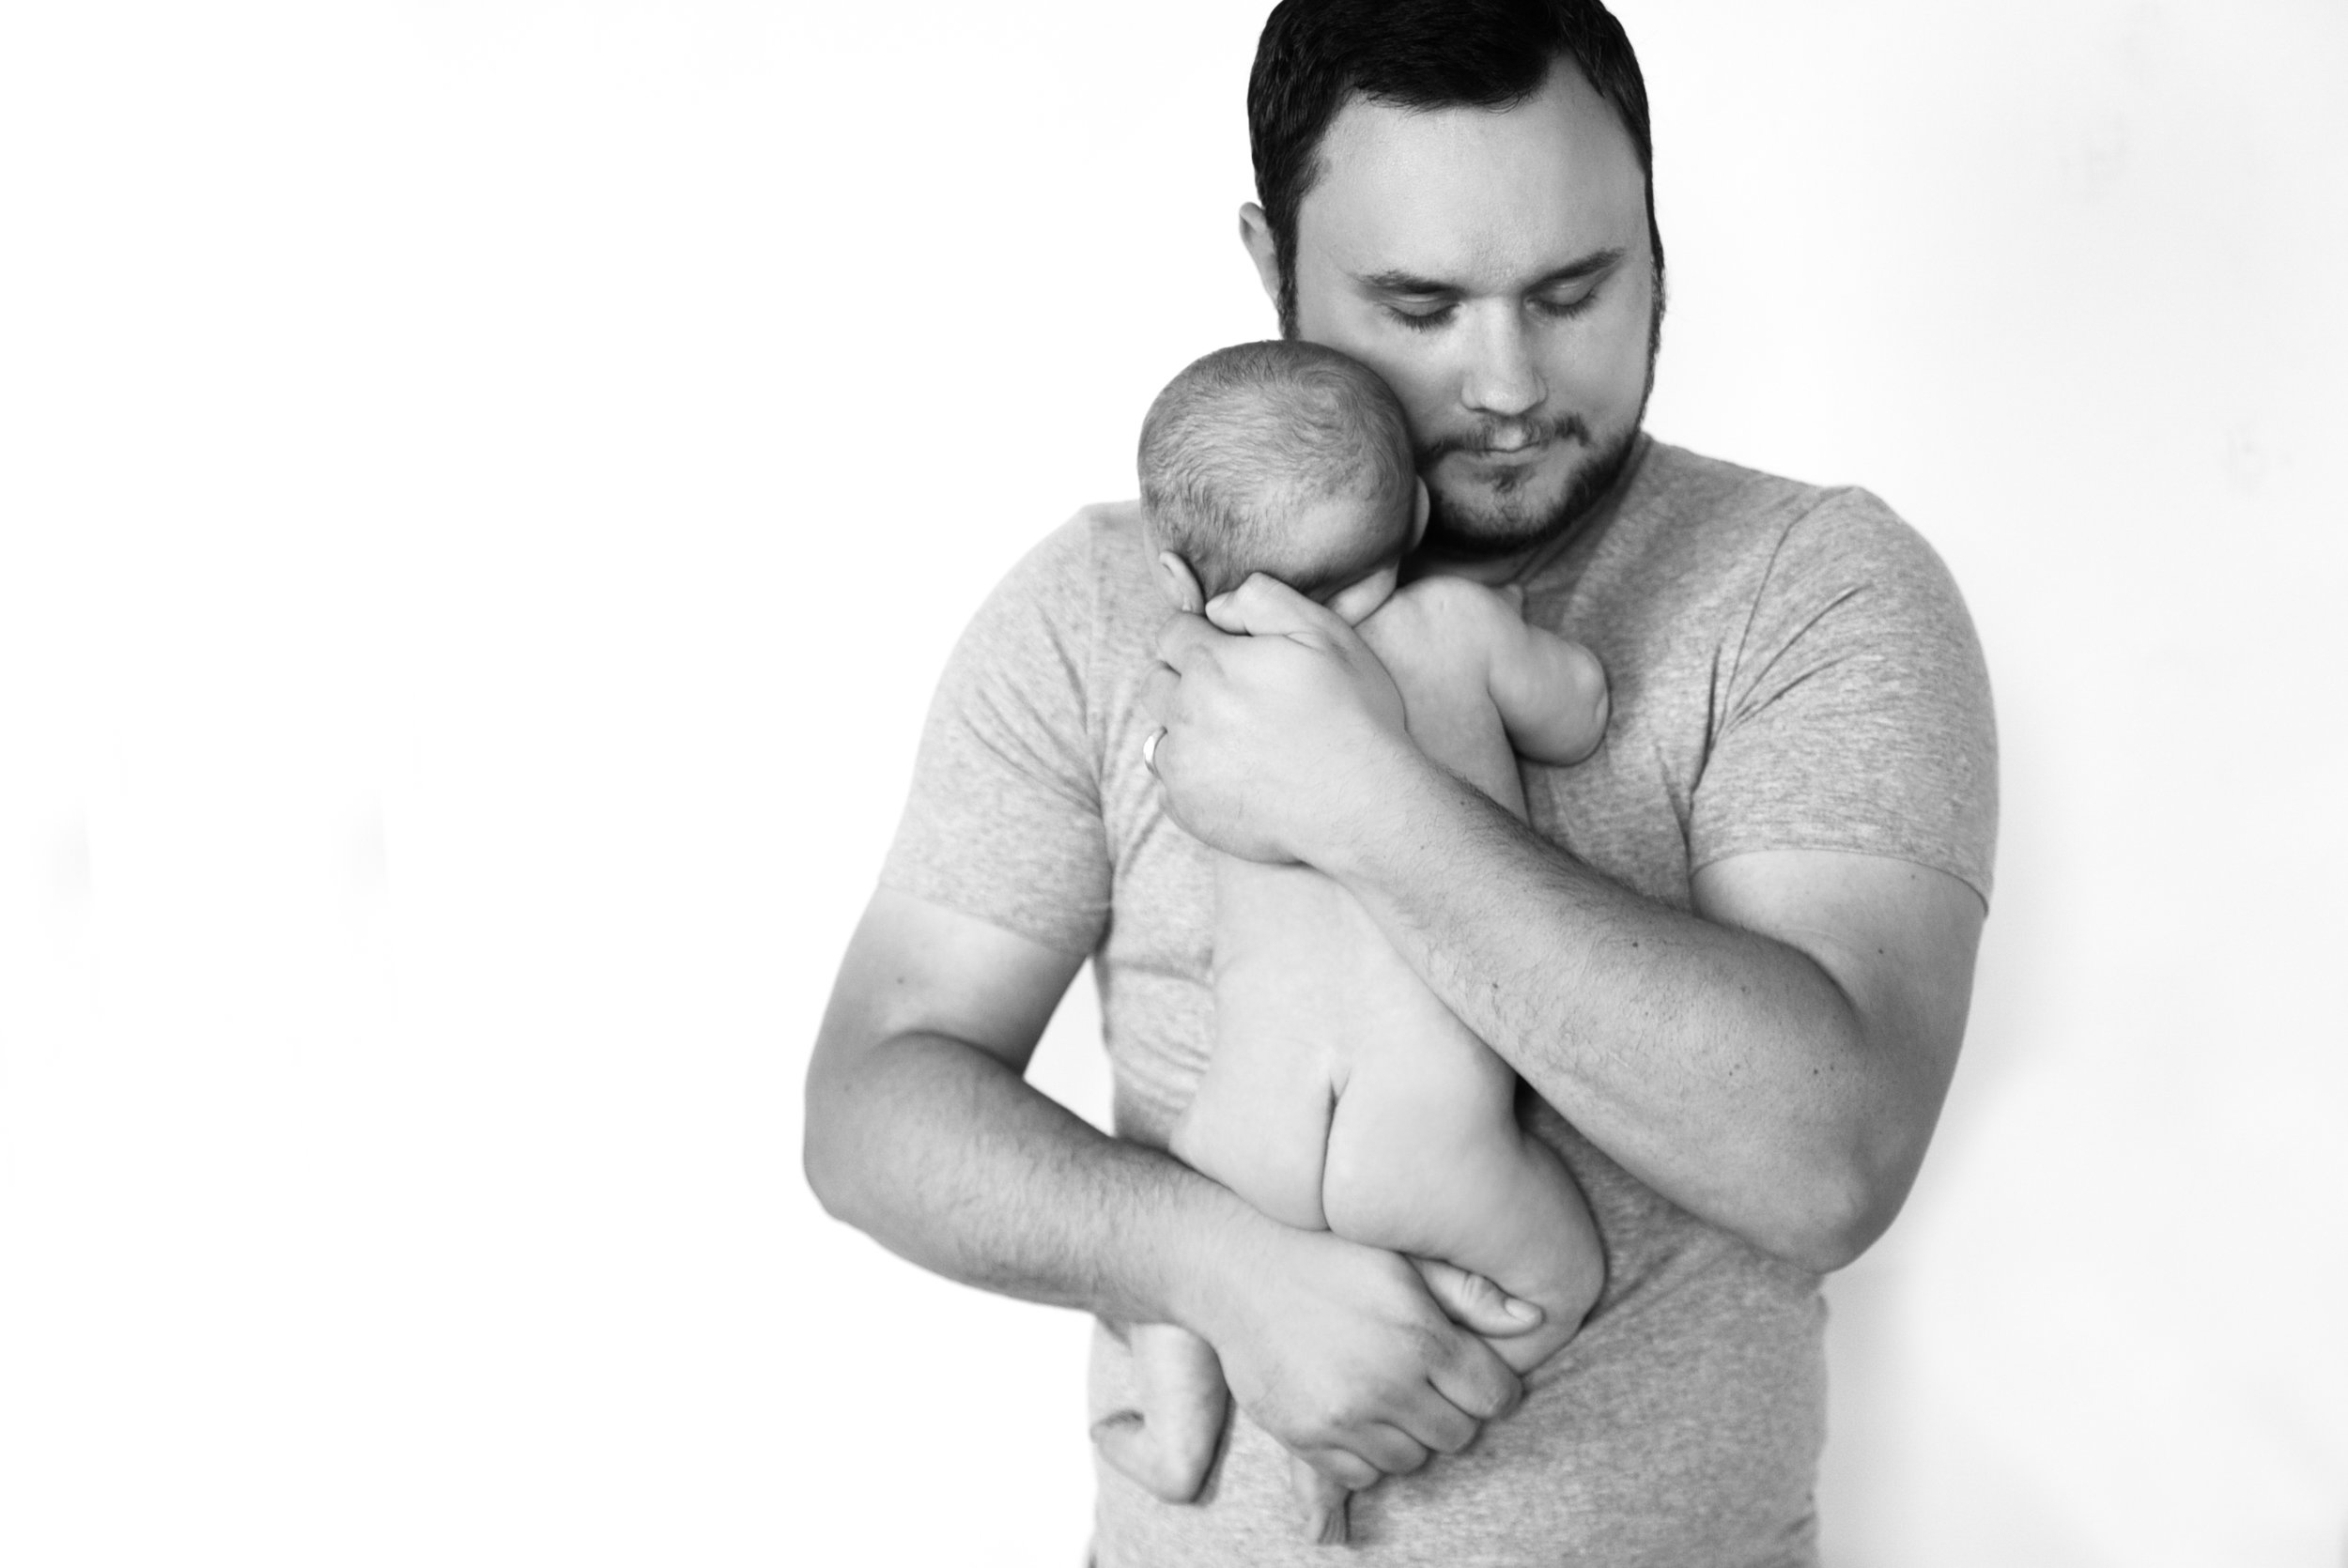 newborn baby photographer Edmond Oklahoma City